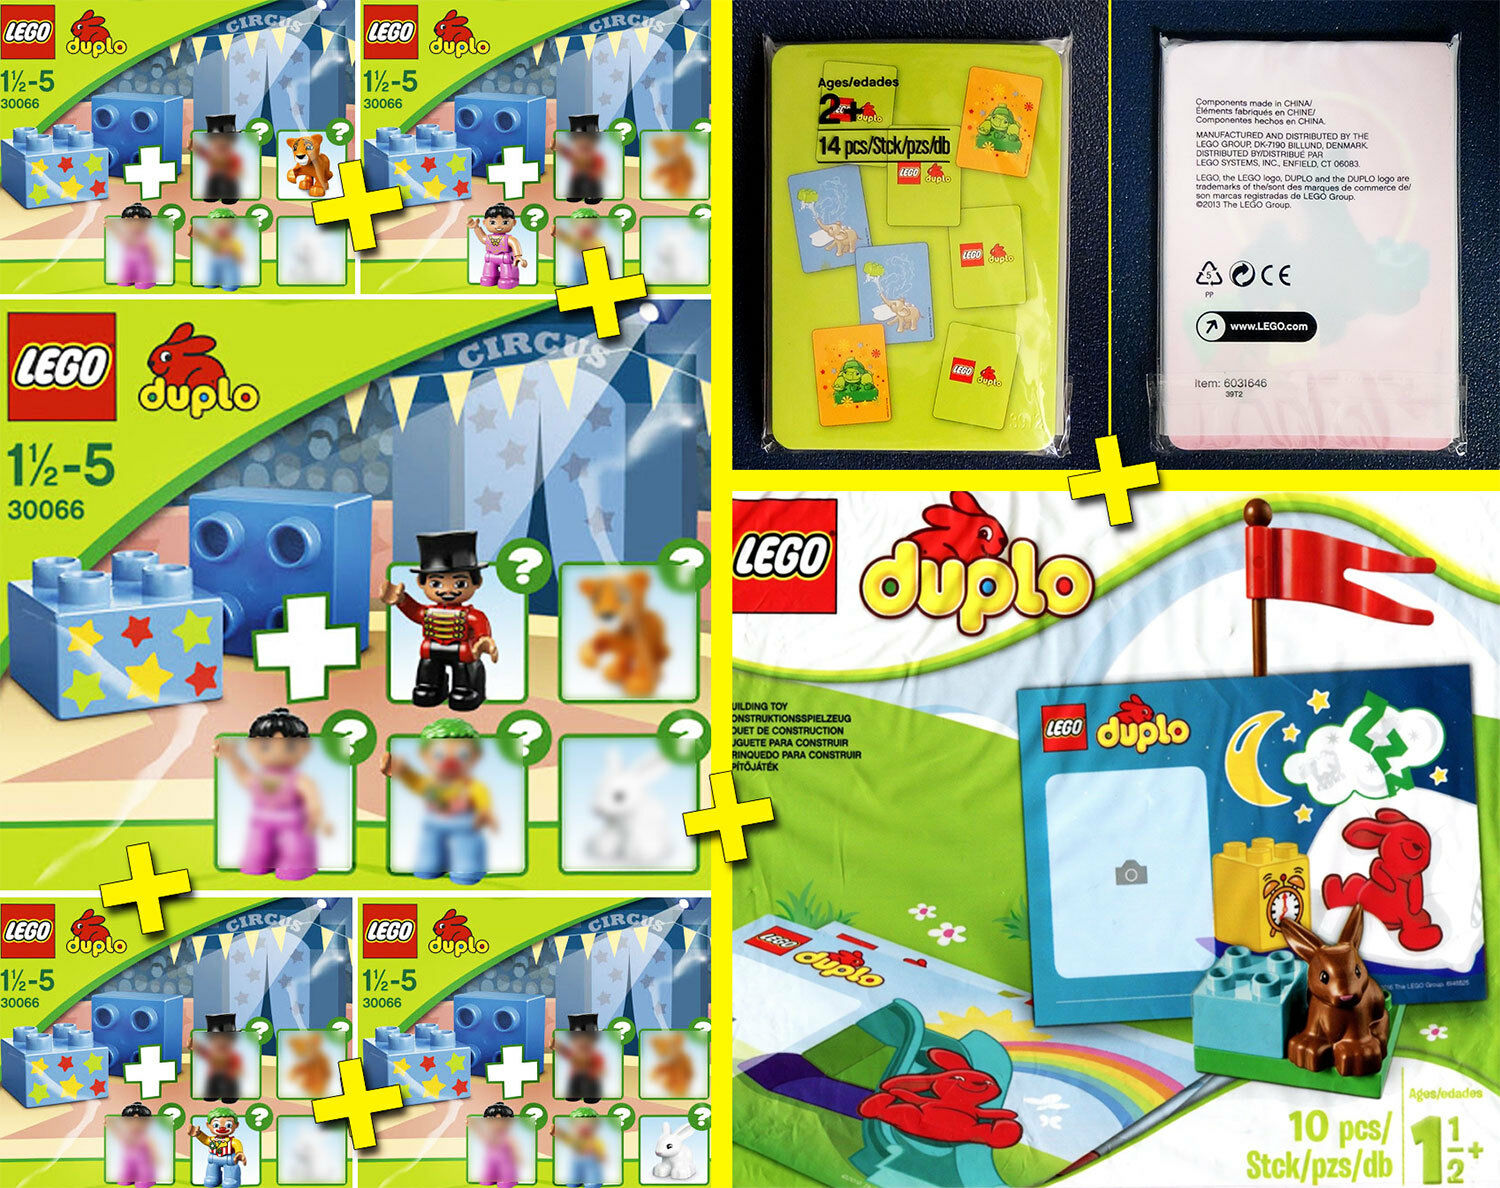 LEGO DUPLO Circus + Stand + Memory Game - 100% NEW